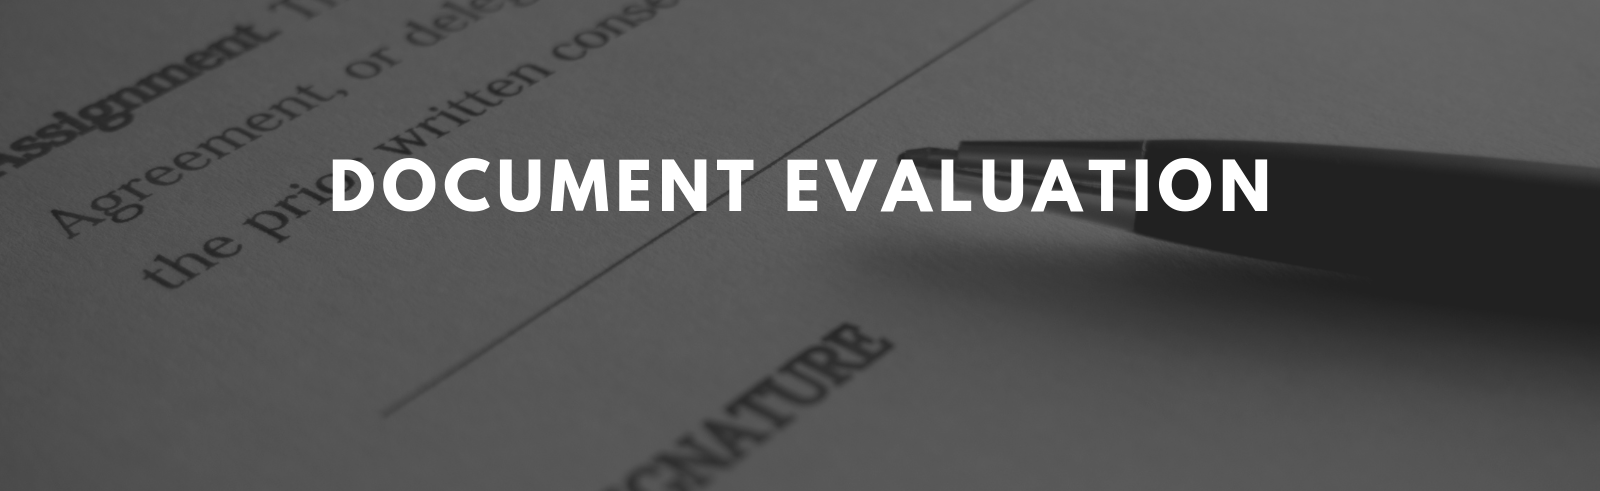 Document Evaluation Page Banner